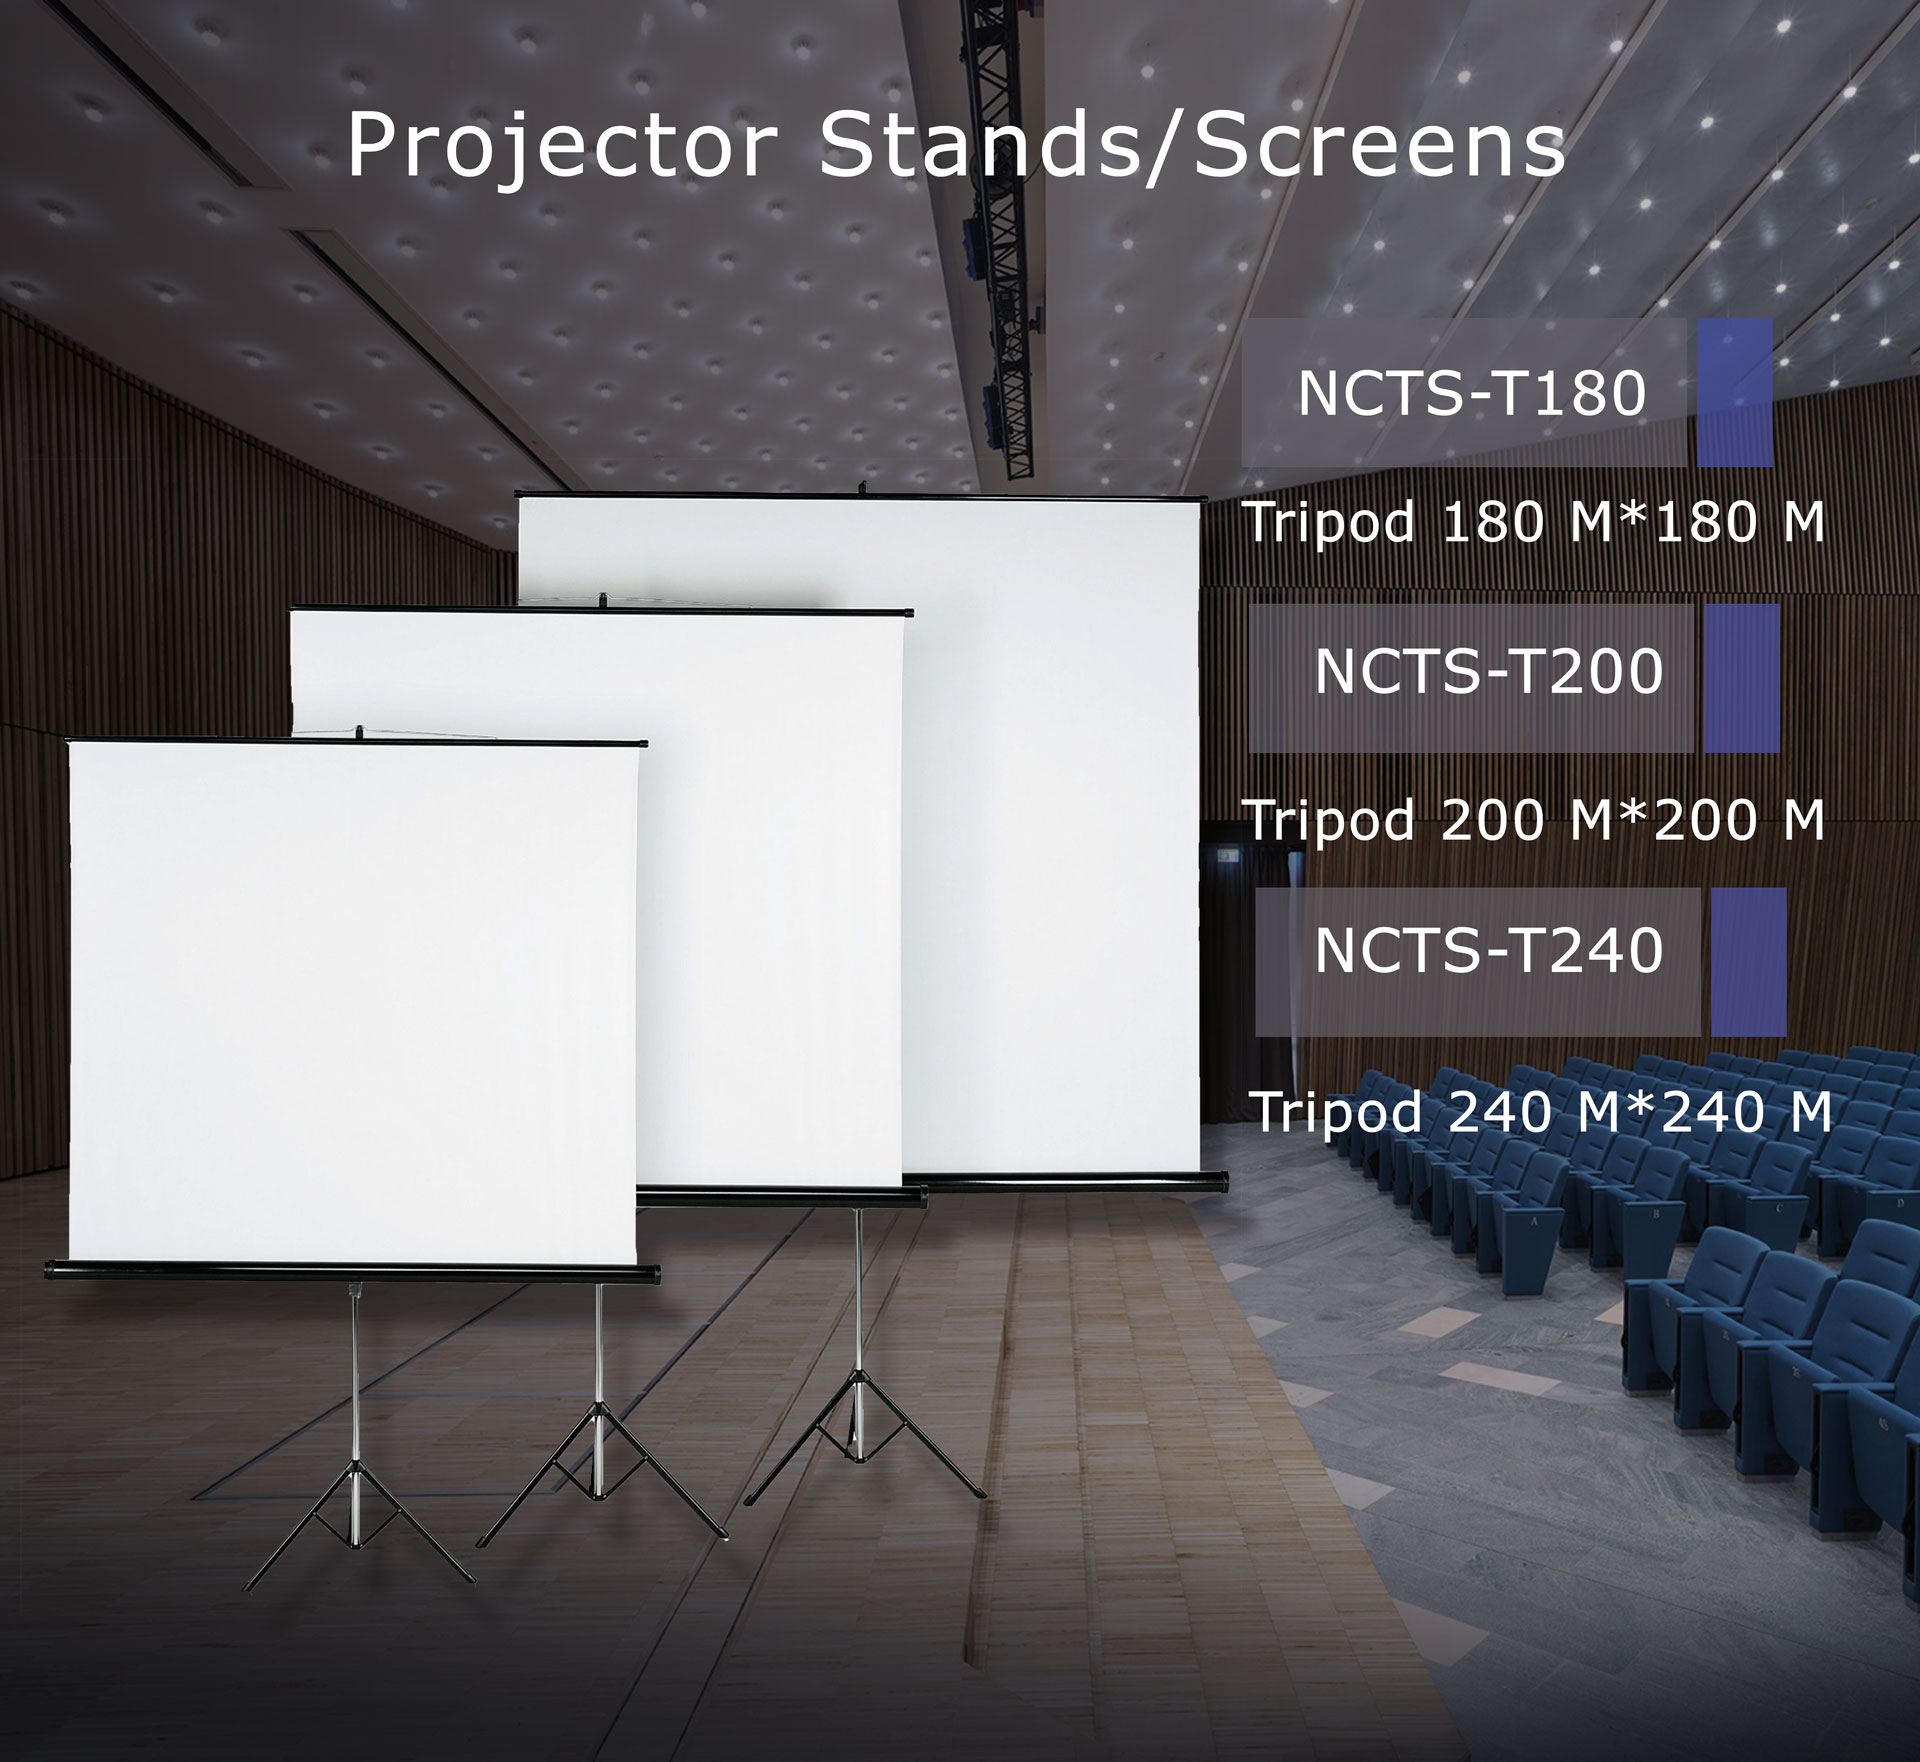 NCTS TRIPOD SCREEN FOR PROJECTOR